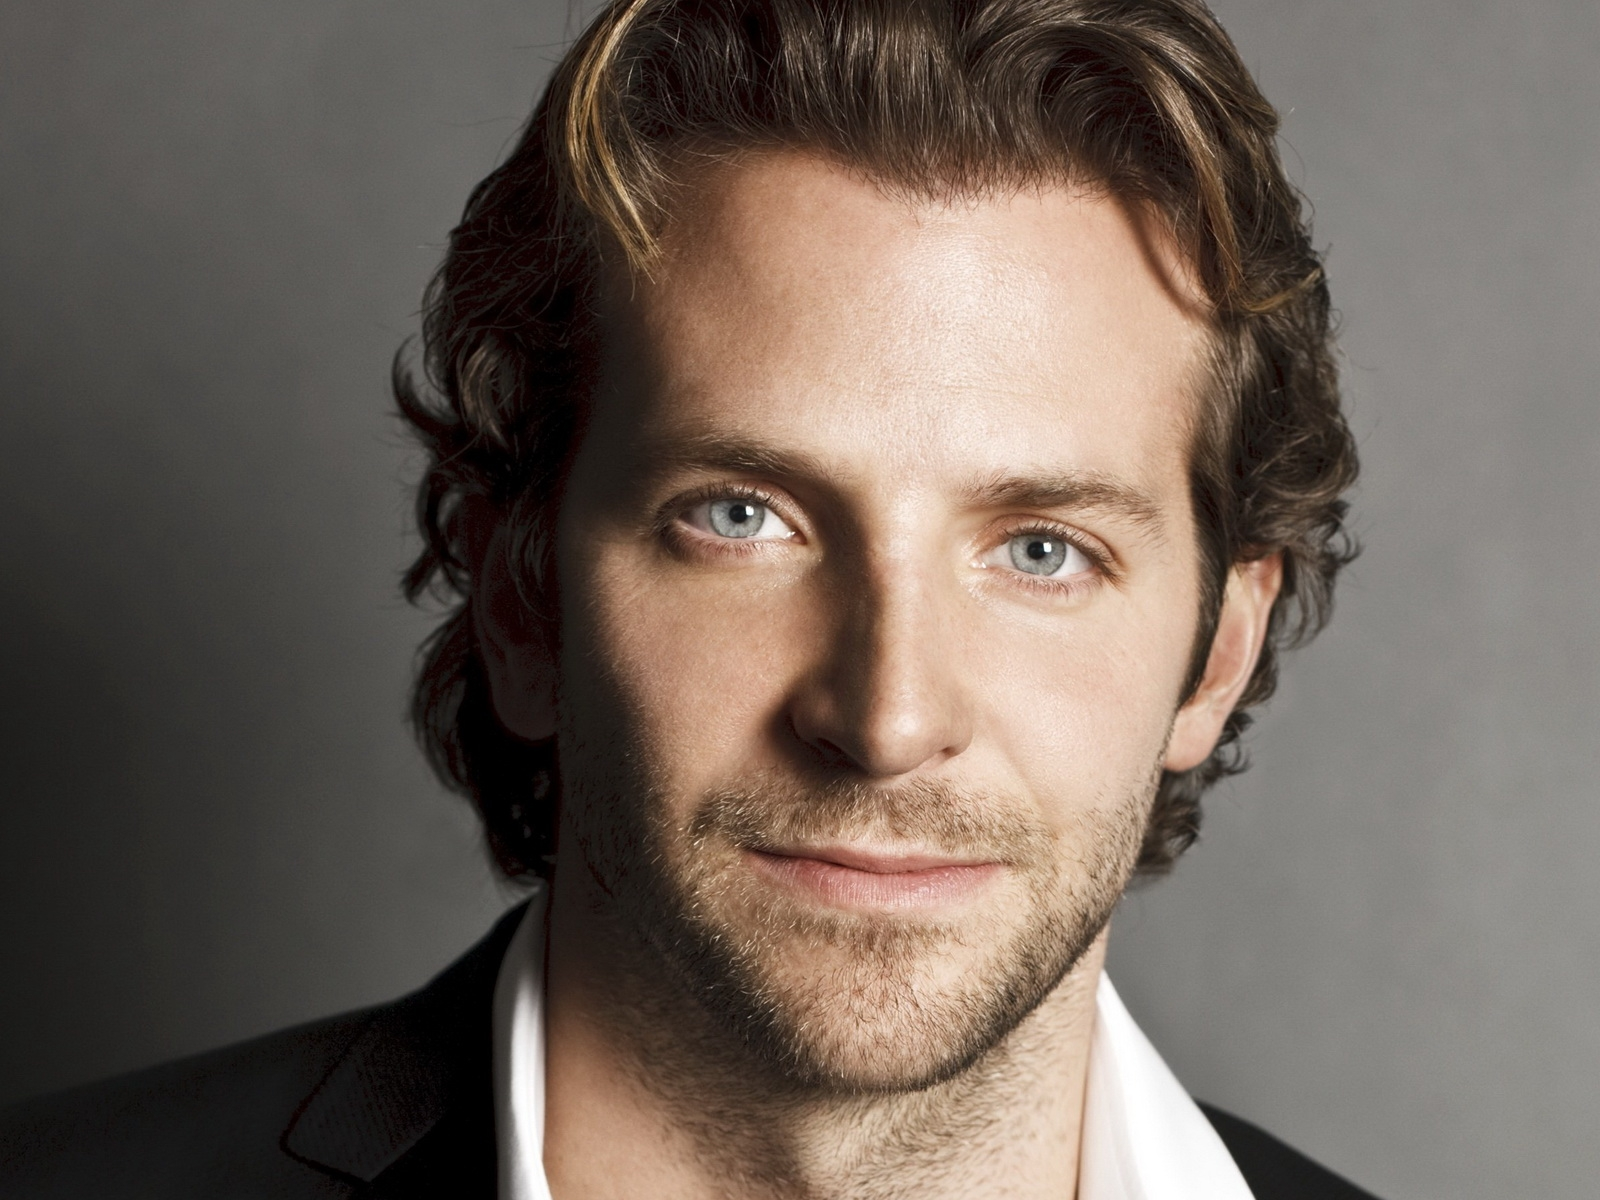 bradley cooper face long haired actor male